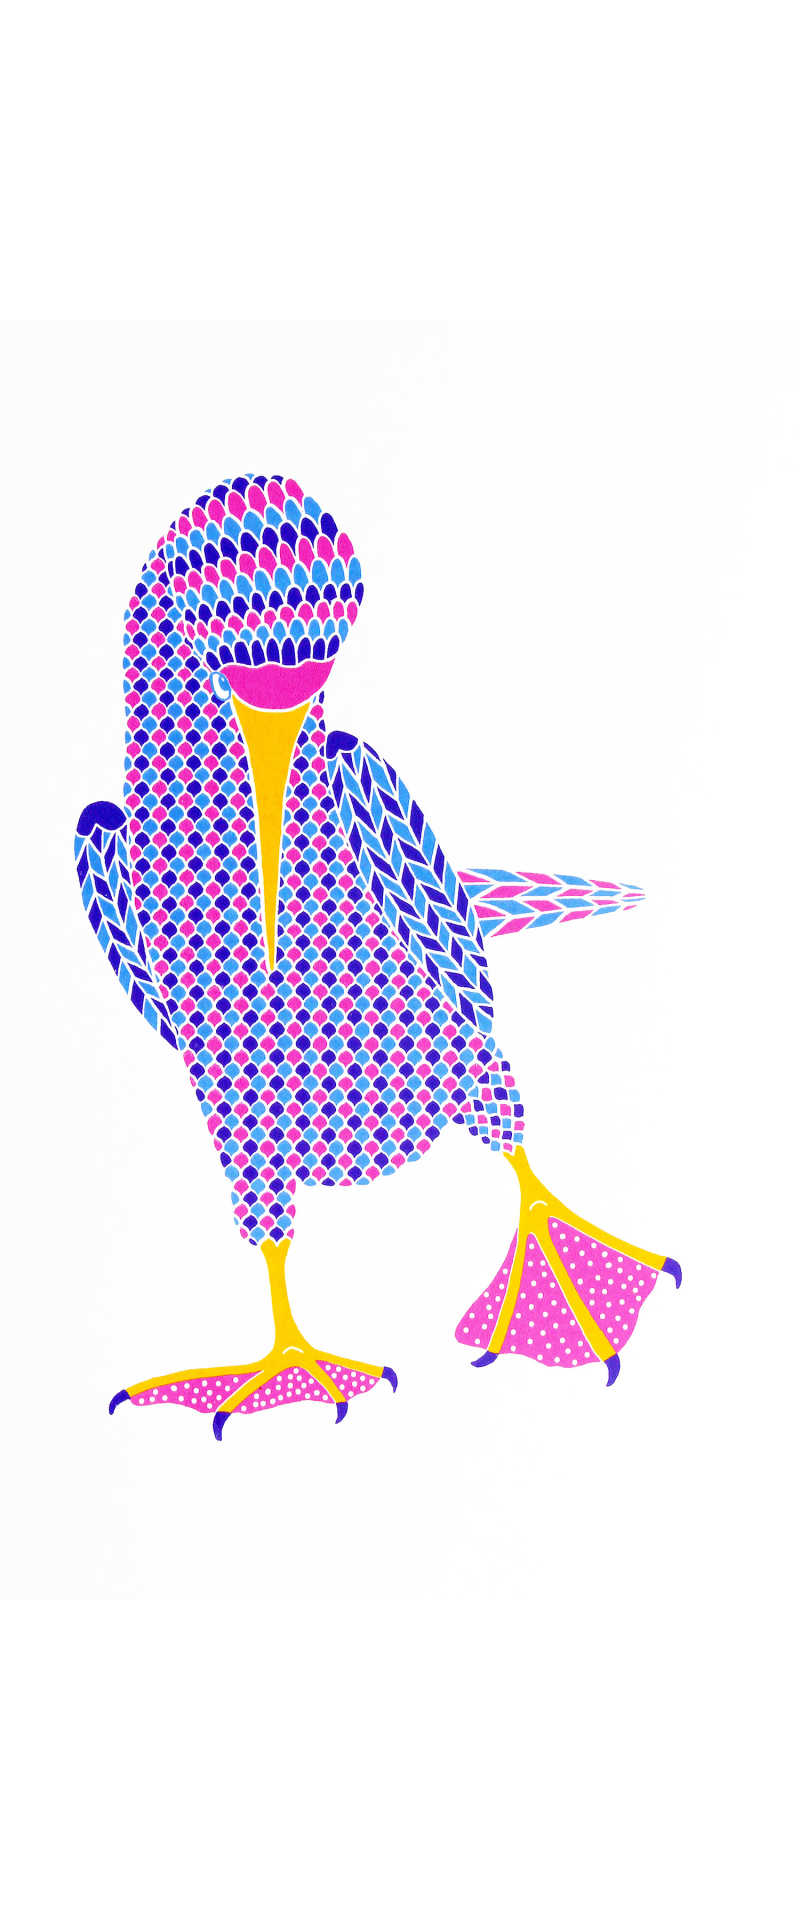 Liz Whiteman Smith, Shy pink booby, Screen print, Edition of 50, 30x40cm, Unframed: £80, 2019